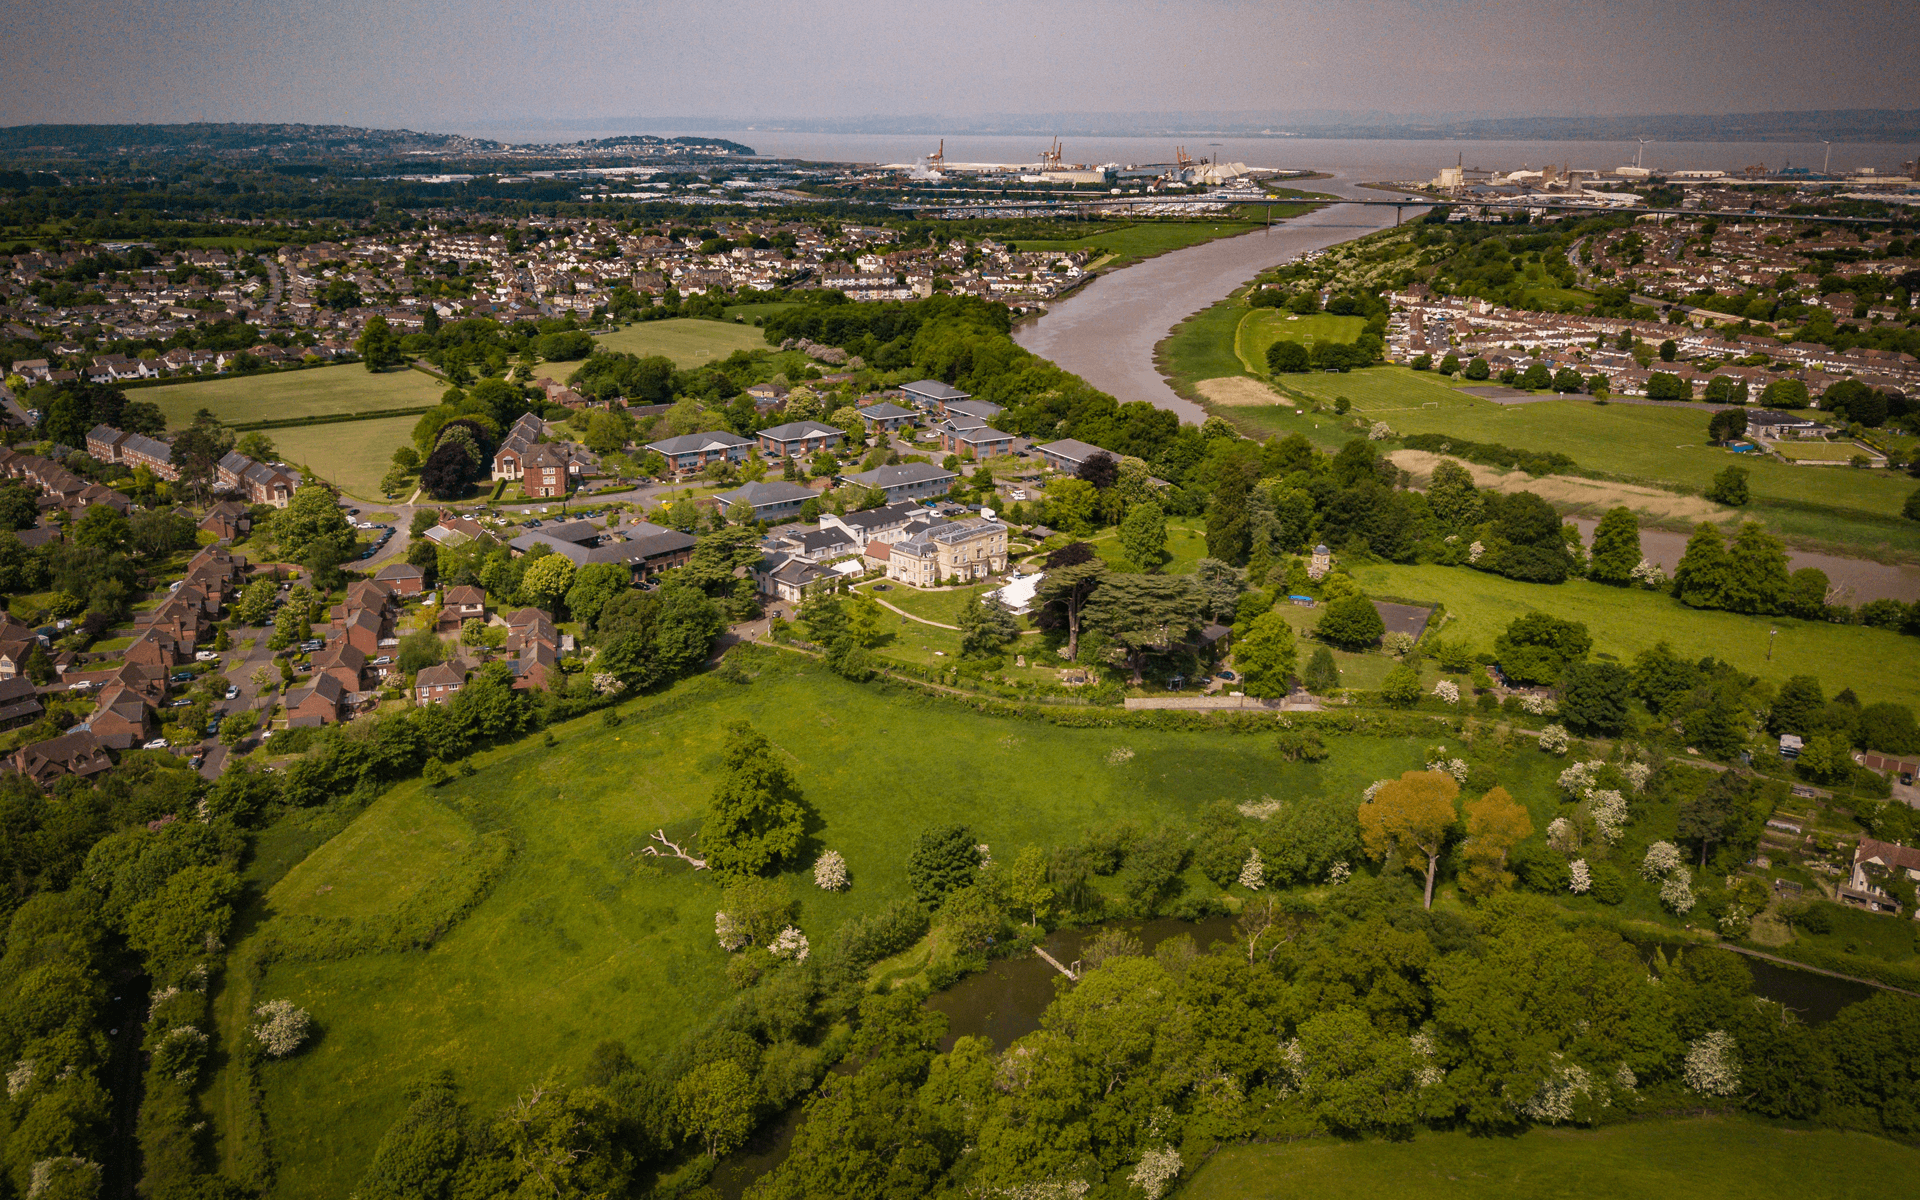 """Mavic Pro"" aerial drone photo of an estate in Ham Green, Bristol"